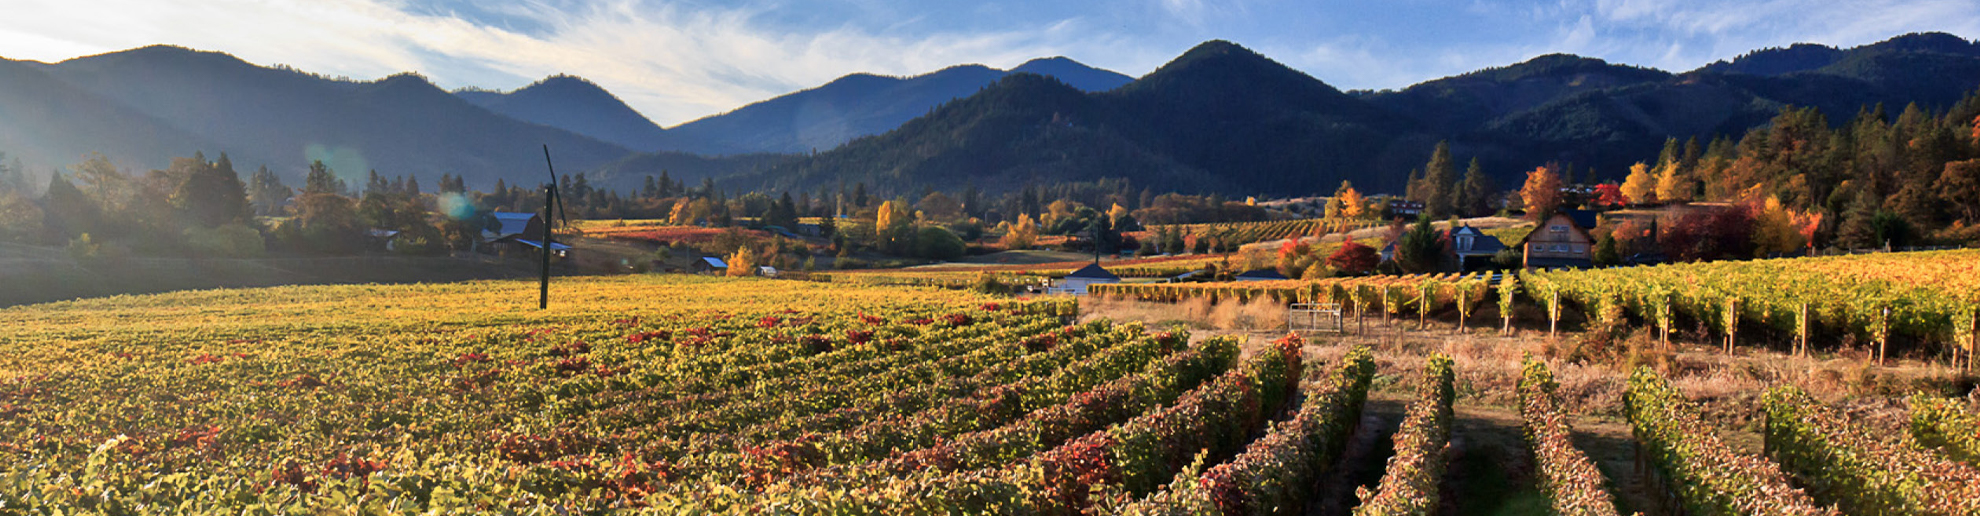 Landscape of Willamette Valley's vineyard and mountains.